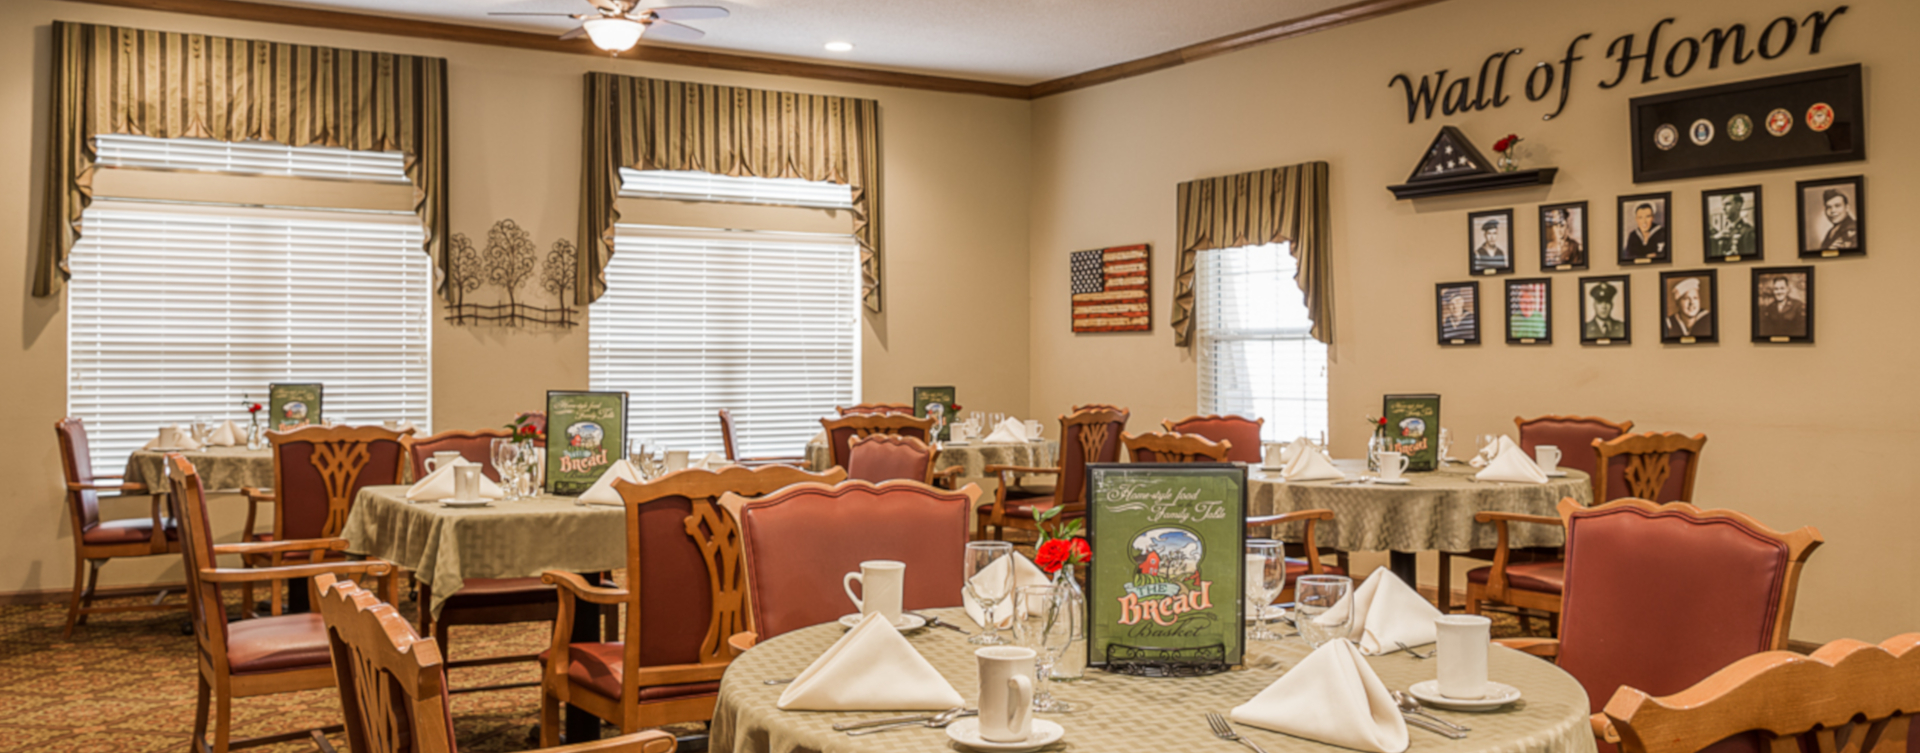 Enjoy homestyle food with made-from-scratch recipes in our dining room at Bickford of Urbandale